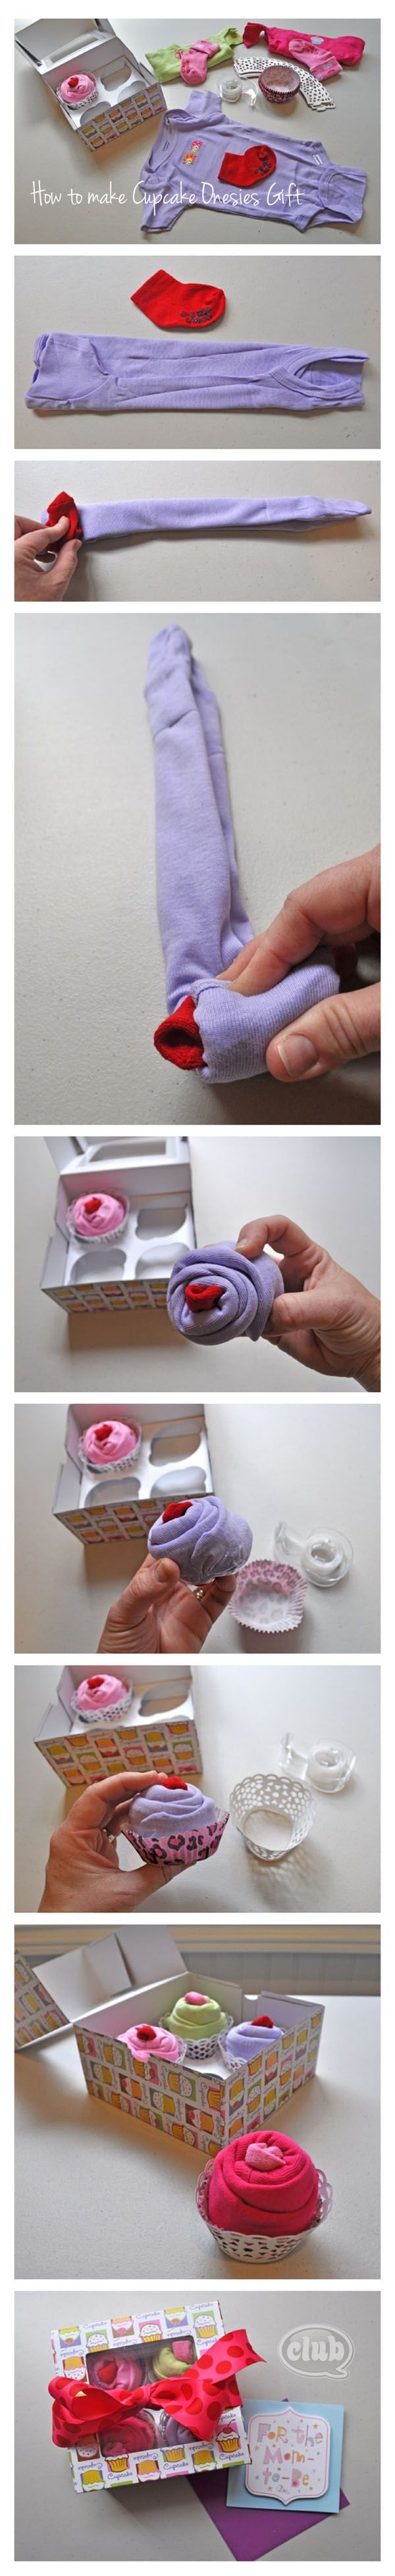 How to fold onesies and socks into cupcakes for a baby gift